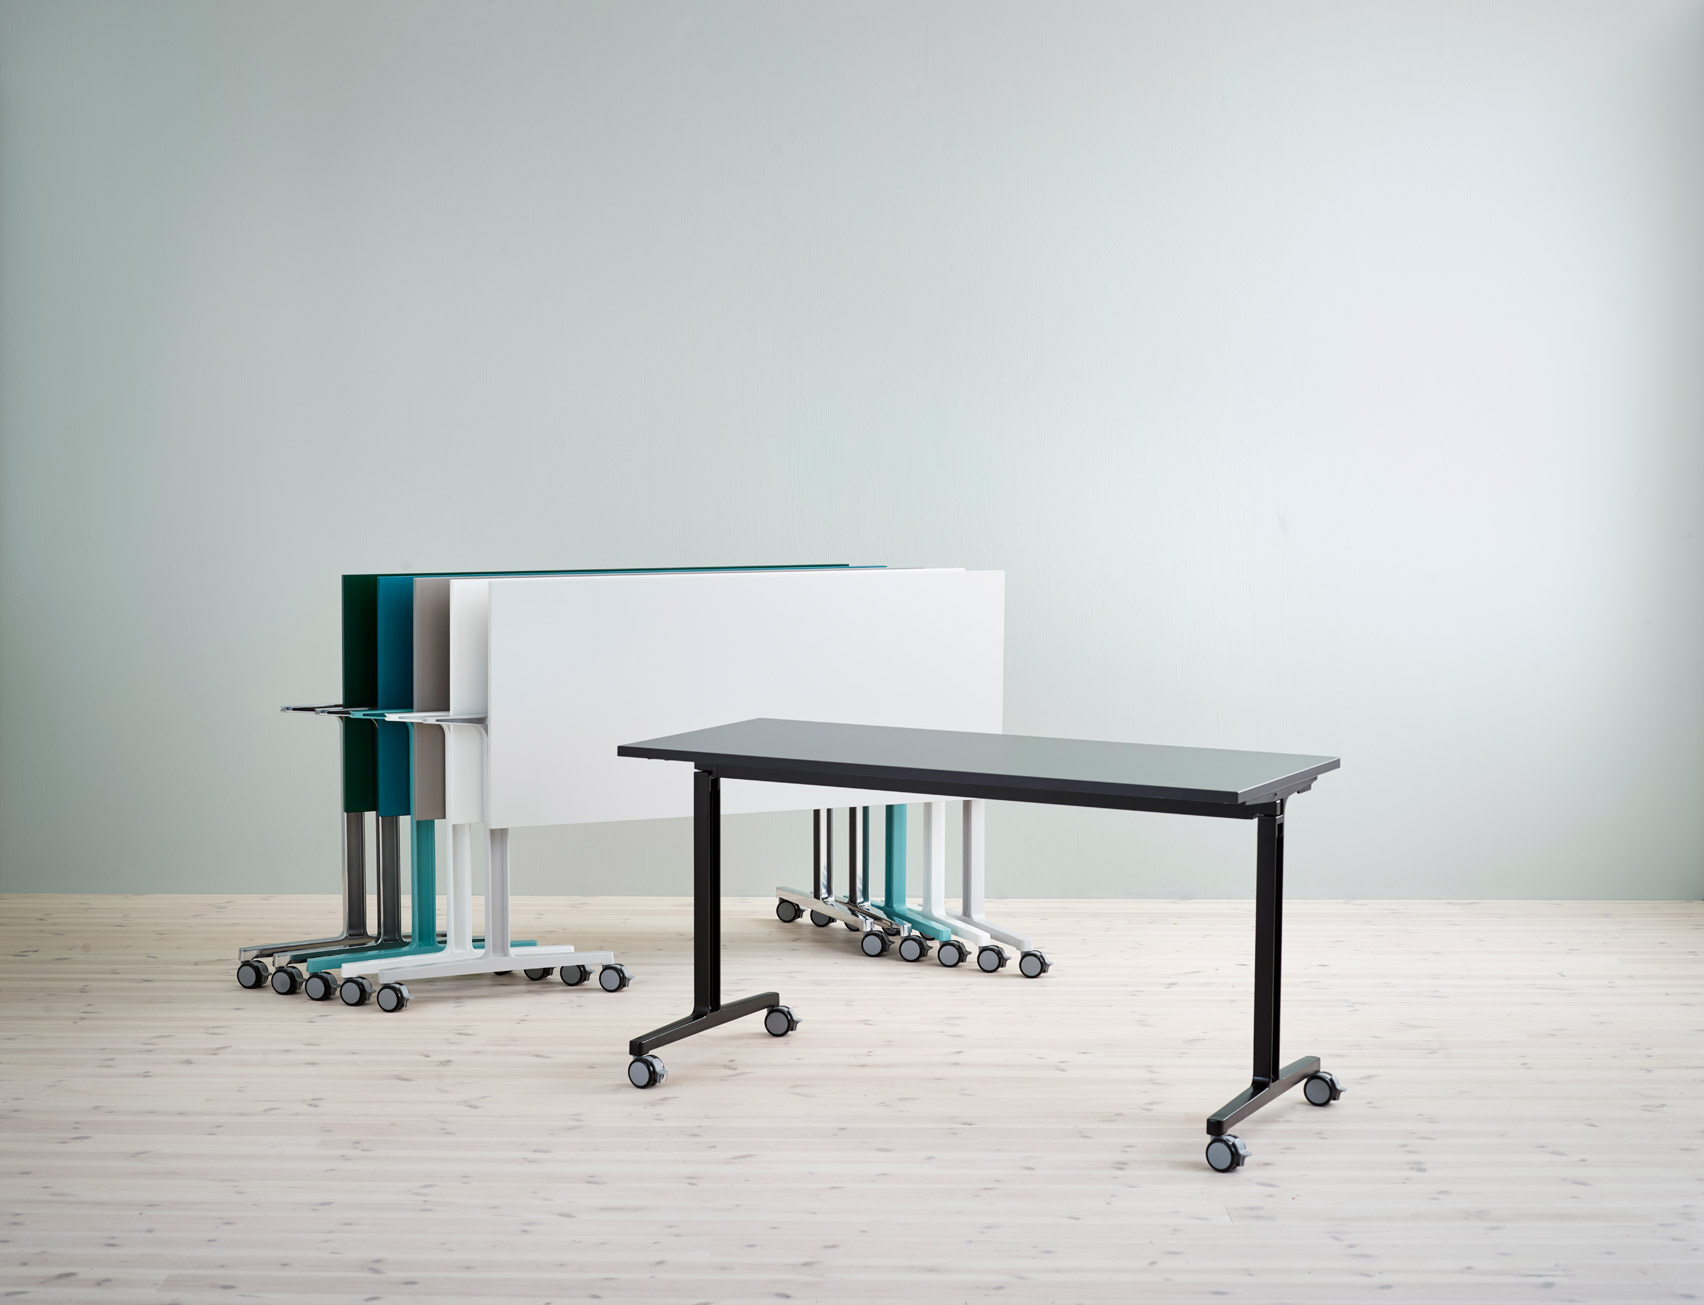 Folded and stacked tables by Flokk